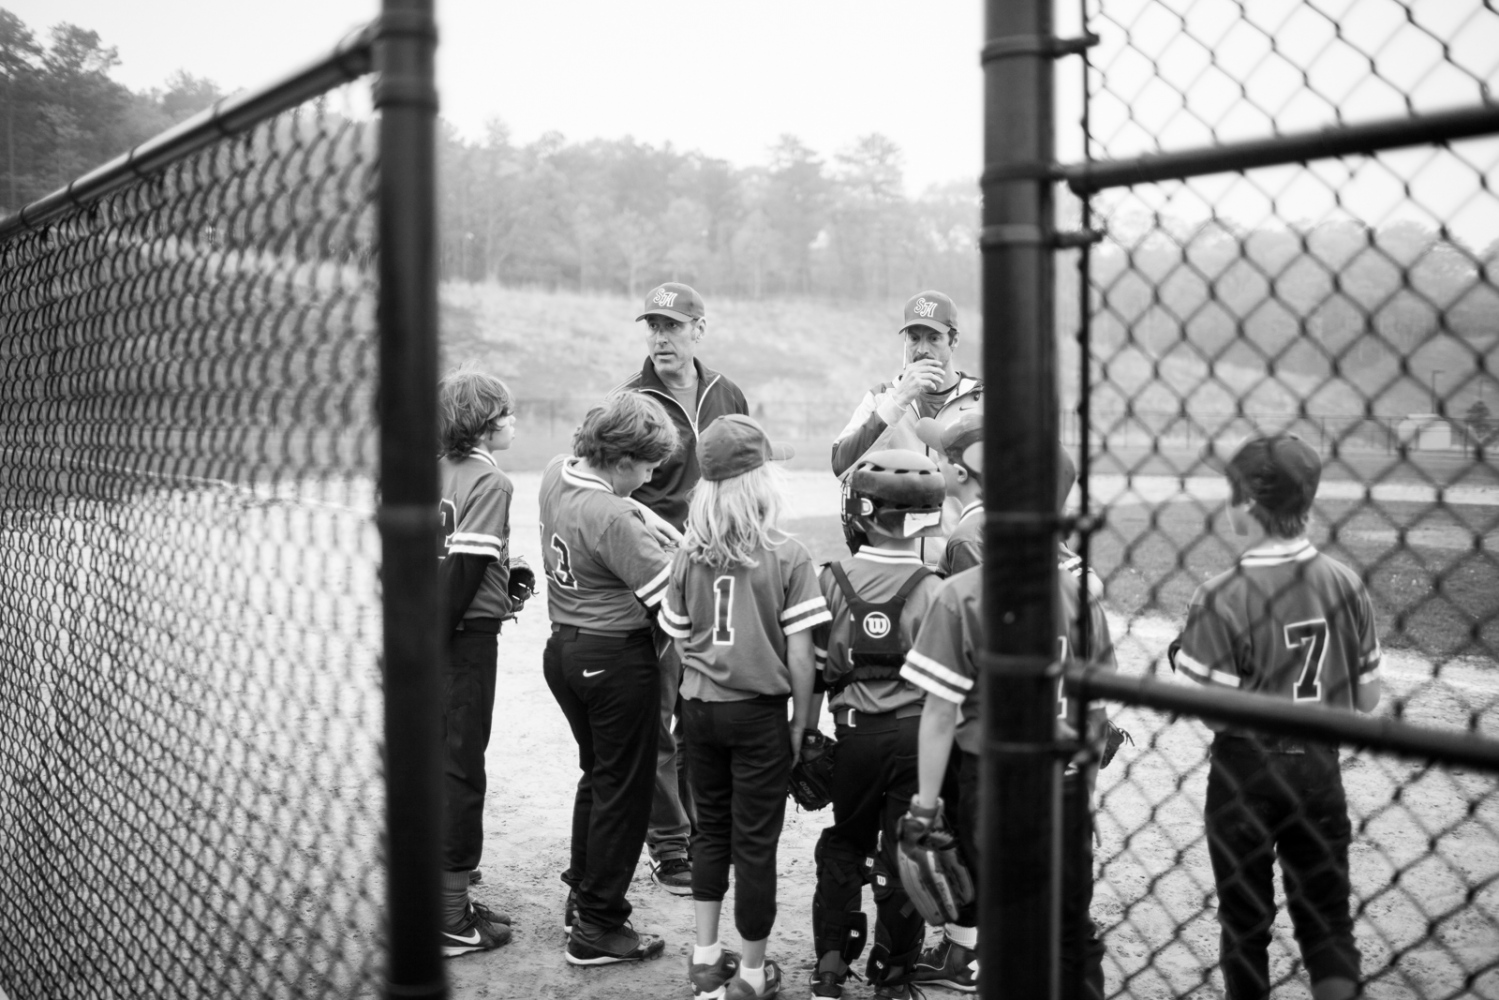 Children participating in youth baseball on Long Island, NY.